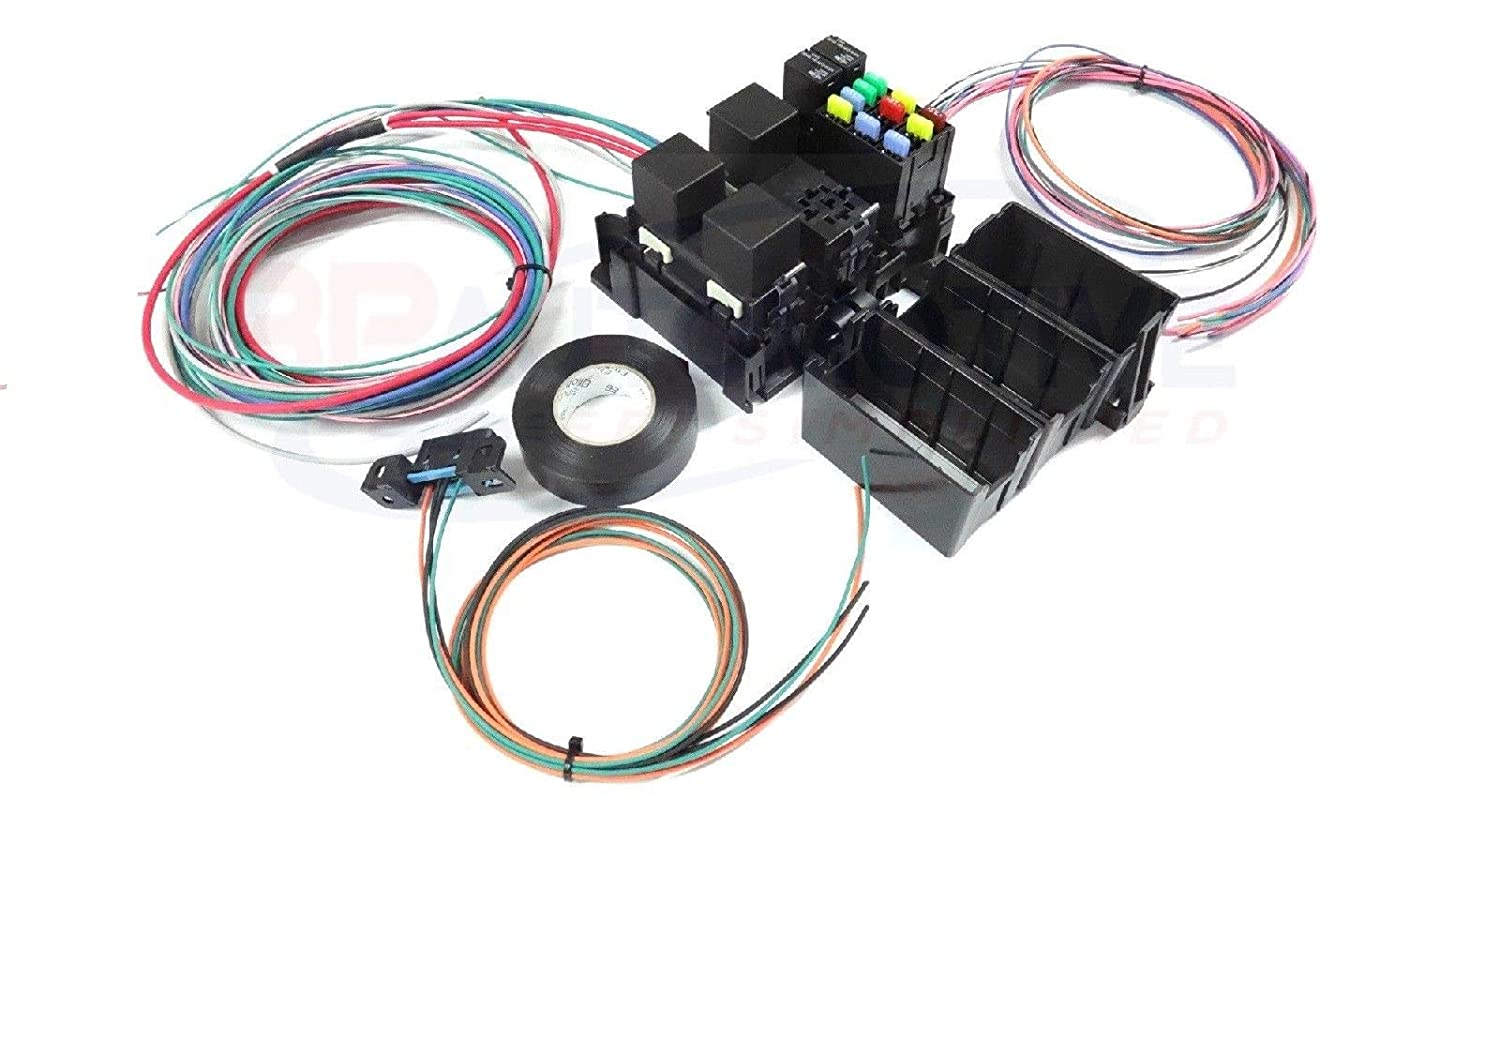 Ls1 Swap Wiring Harness Kit - Wiring Diagram Review Ls Engine Swap Wiring Harness on